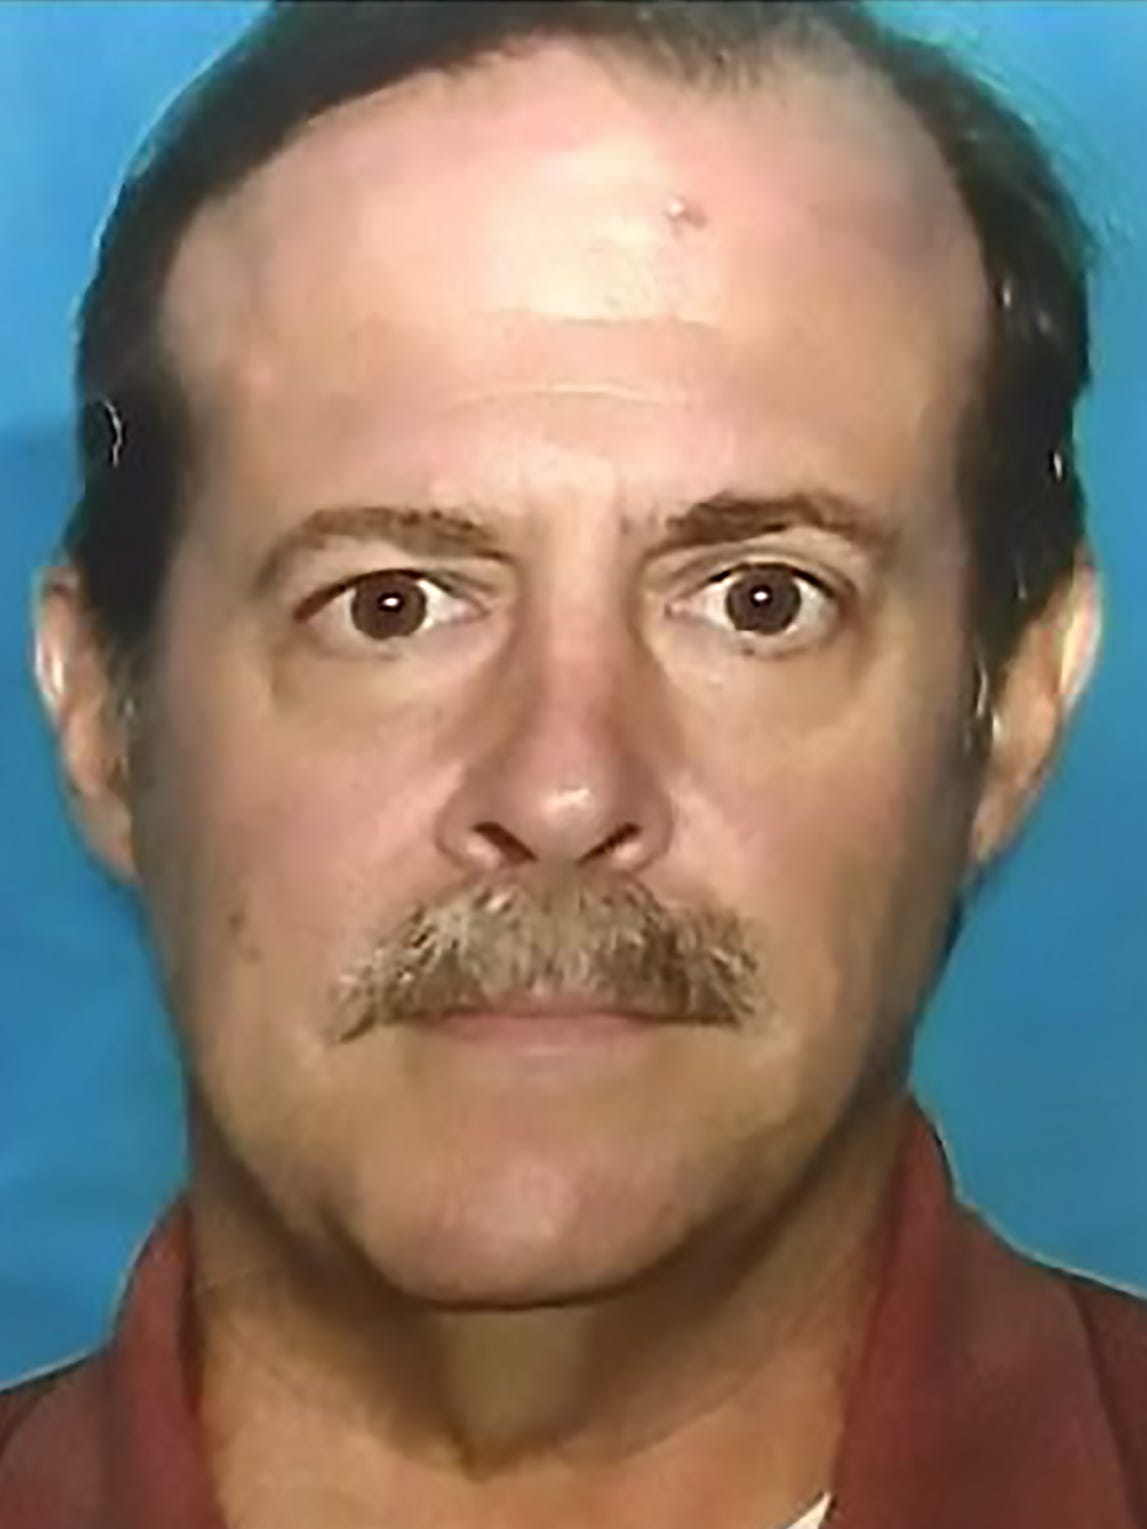 Joseph James Pappas, 65, of Houston is a suspect in the death of Dr. Mark Hausknecht, 65, shot to death July 20, 2018, while bicycling to work on the Texas Medical Center campus in Houston.